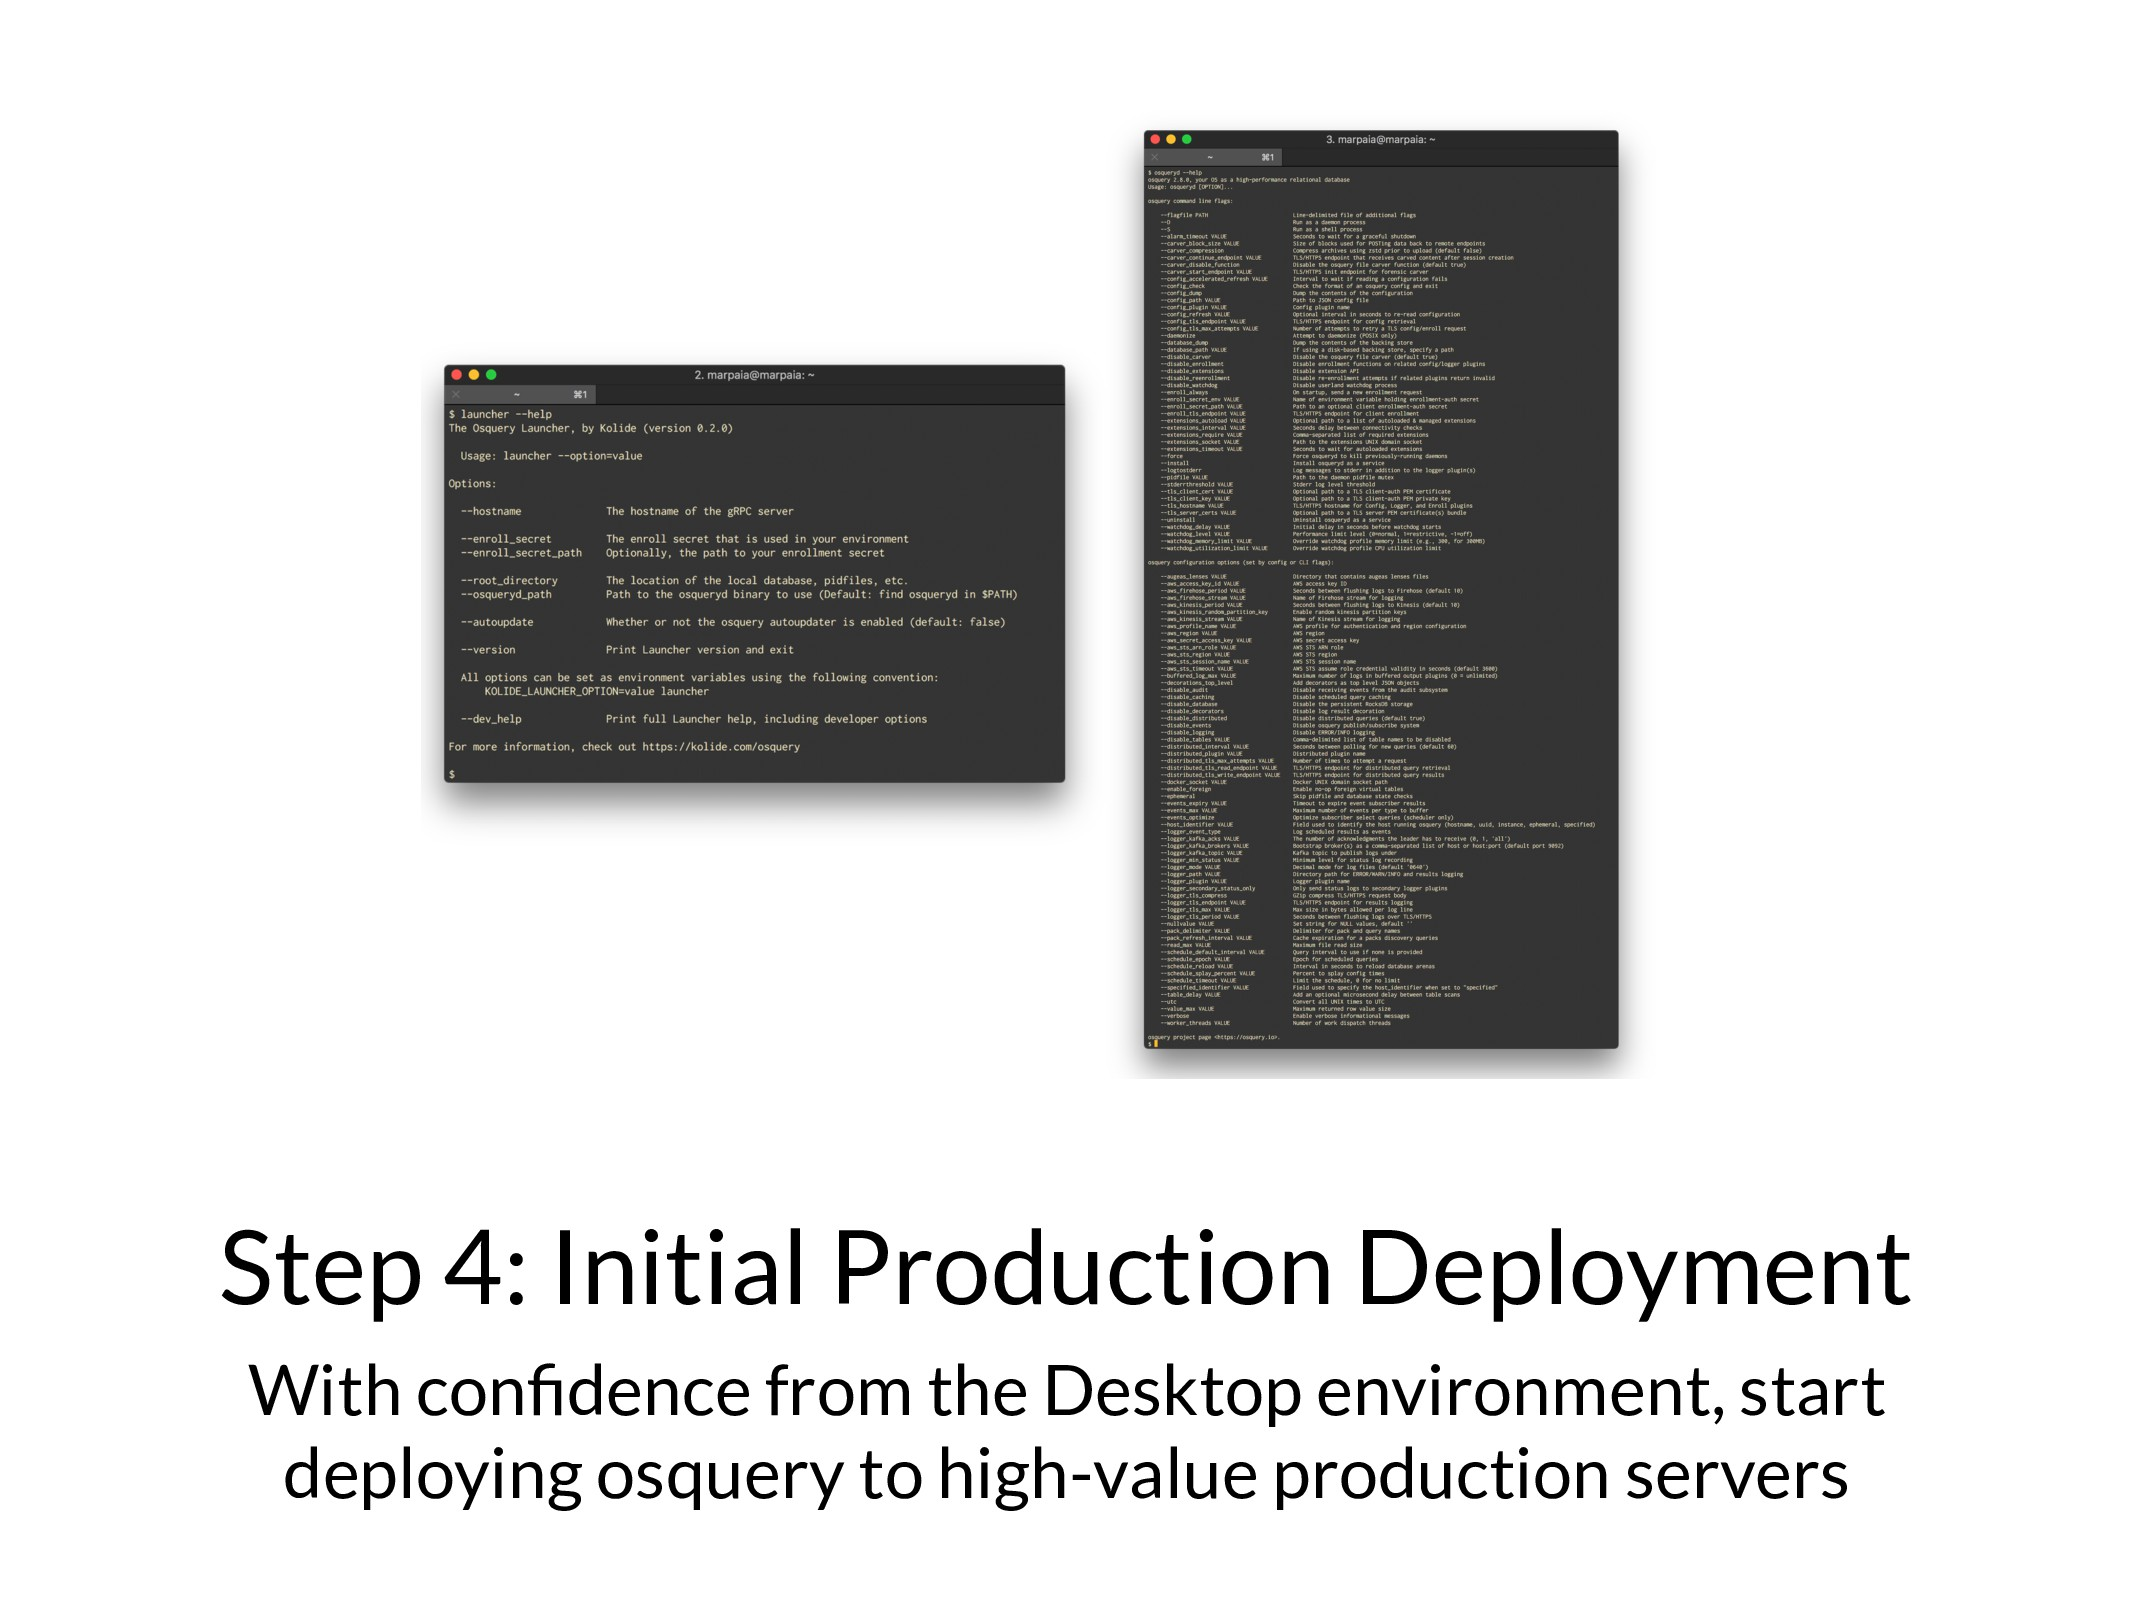 Step 4: Initial Production Deployment With confi...